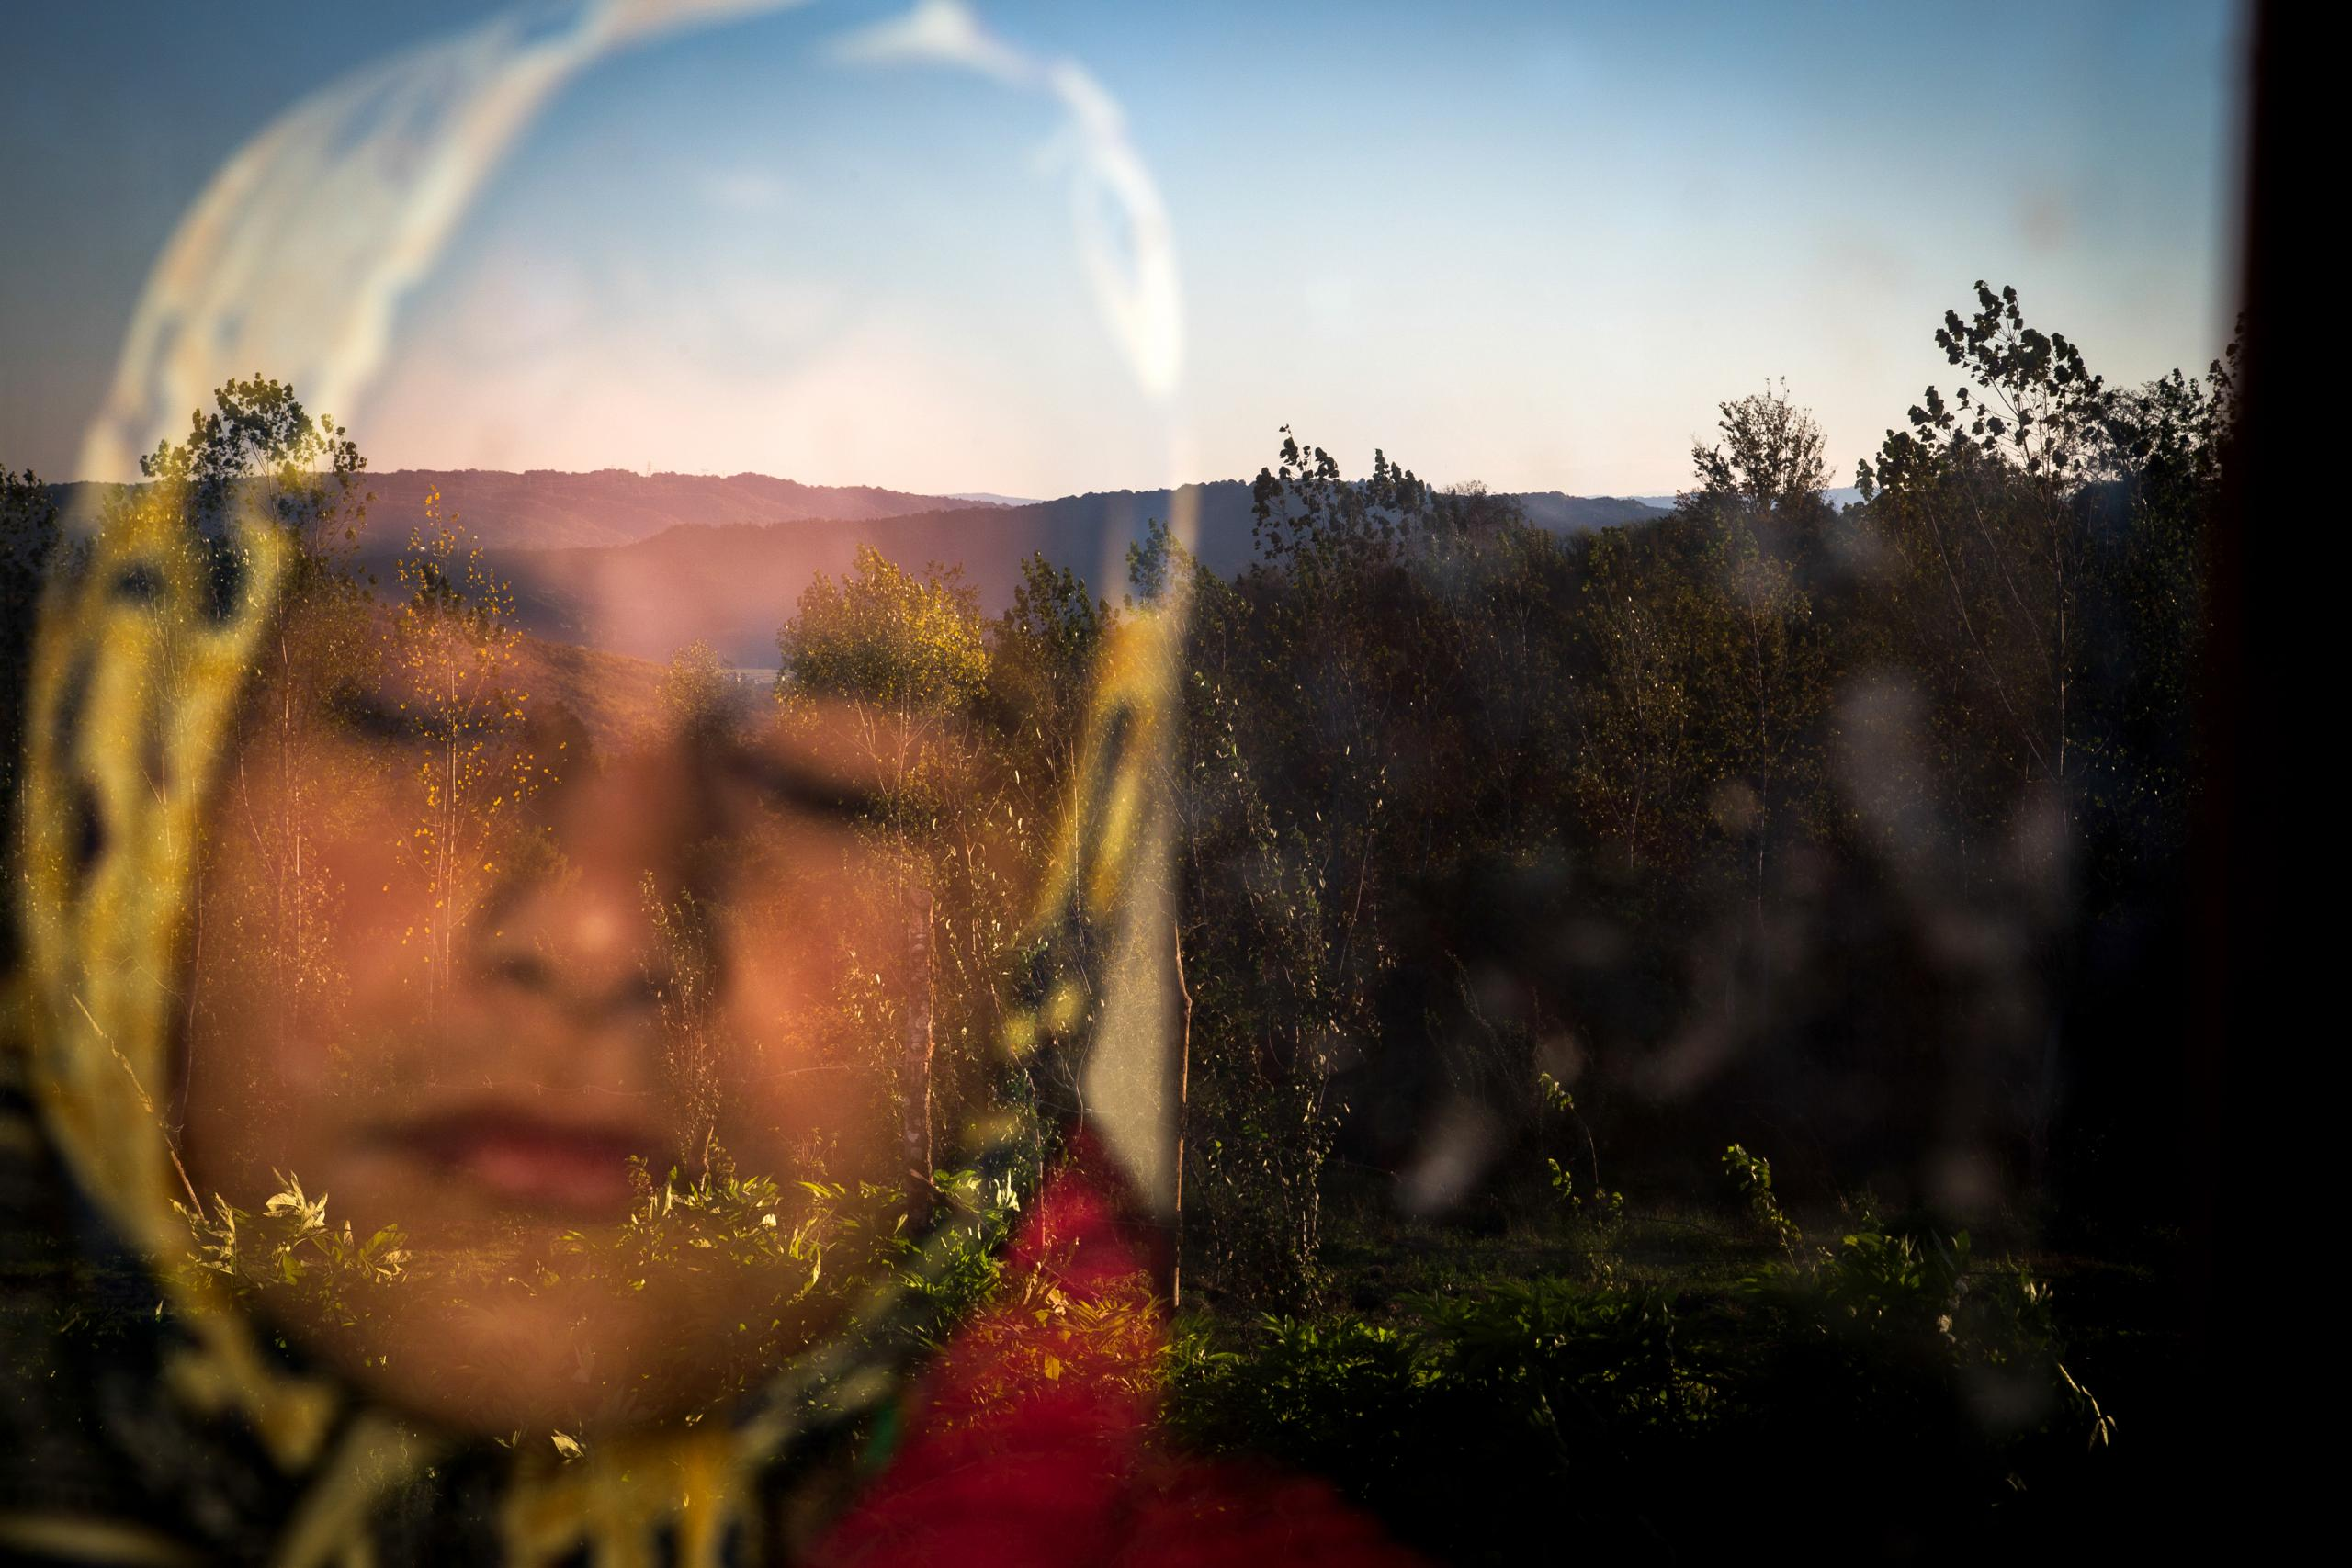 Zohreh Saberi won the third prize in the Daily Life category for her picture, Into The Light, which shows 13-year-old Raleigh who is born blind as she stands behind a window in the morning, to feel the warmth of the sun on her face.